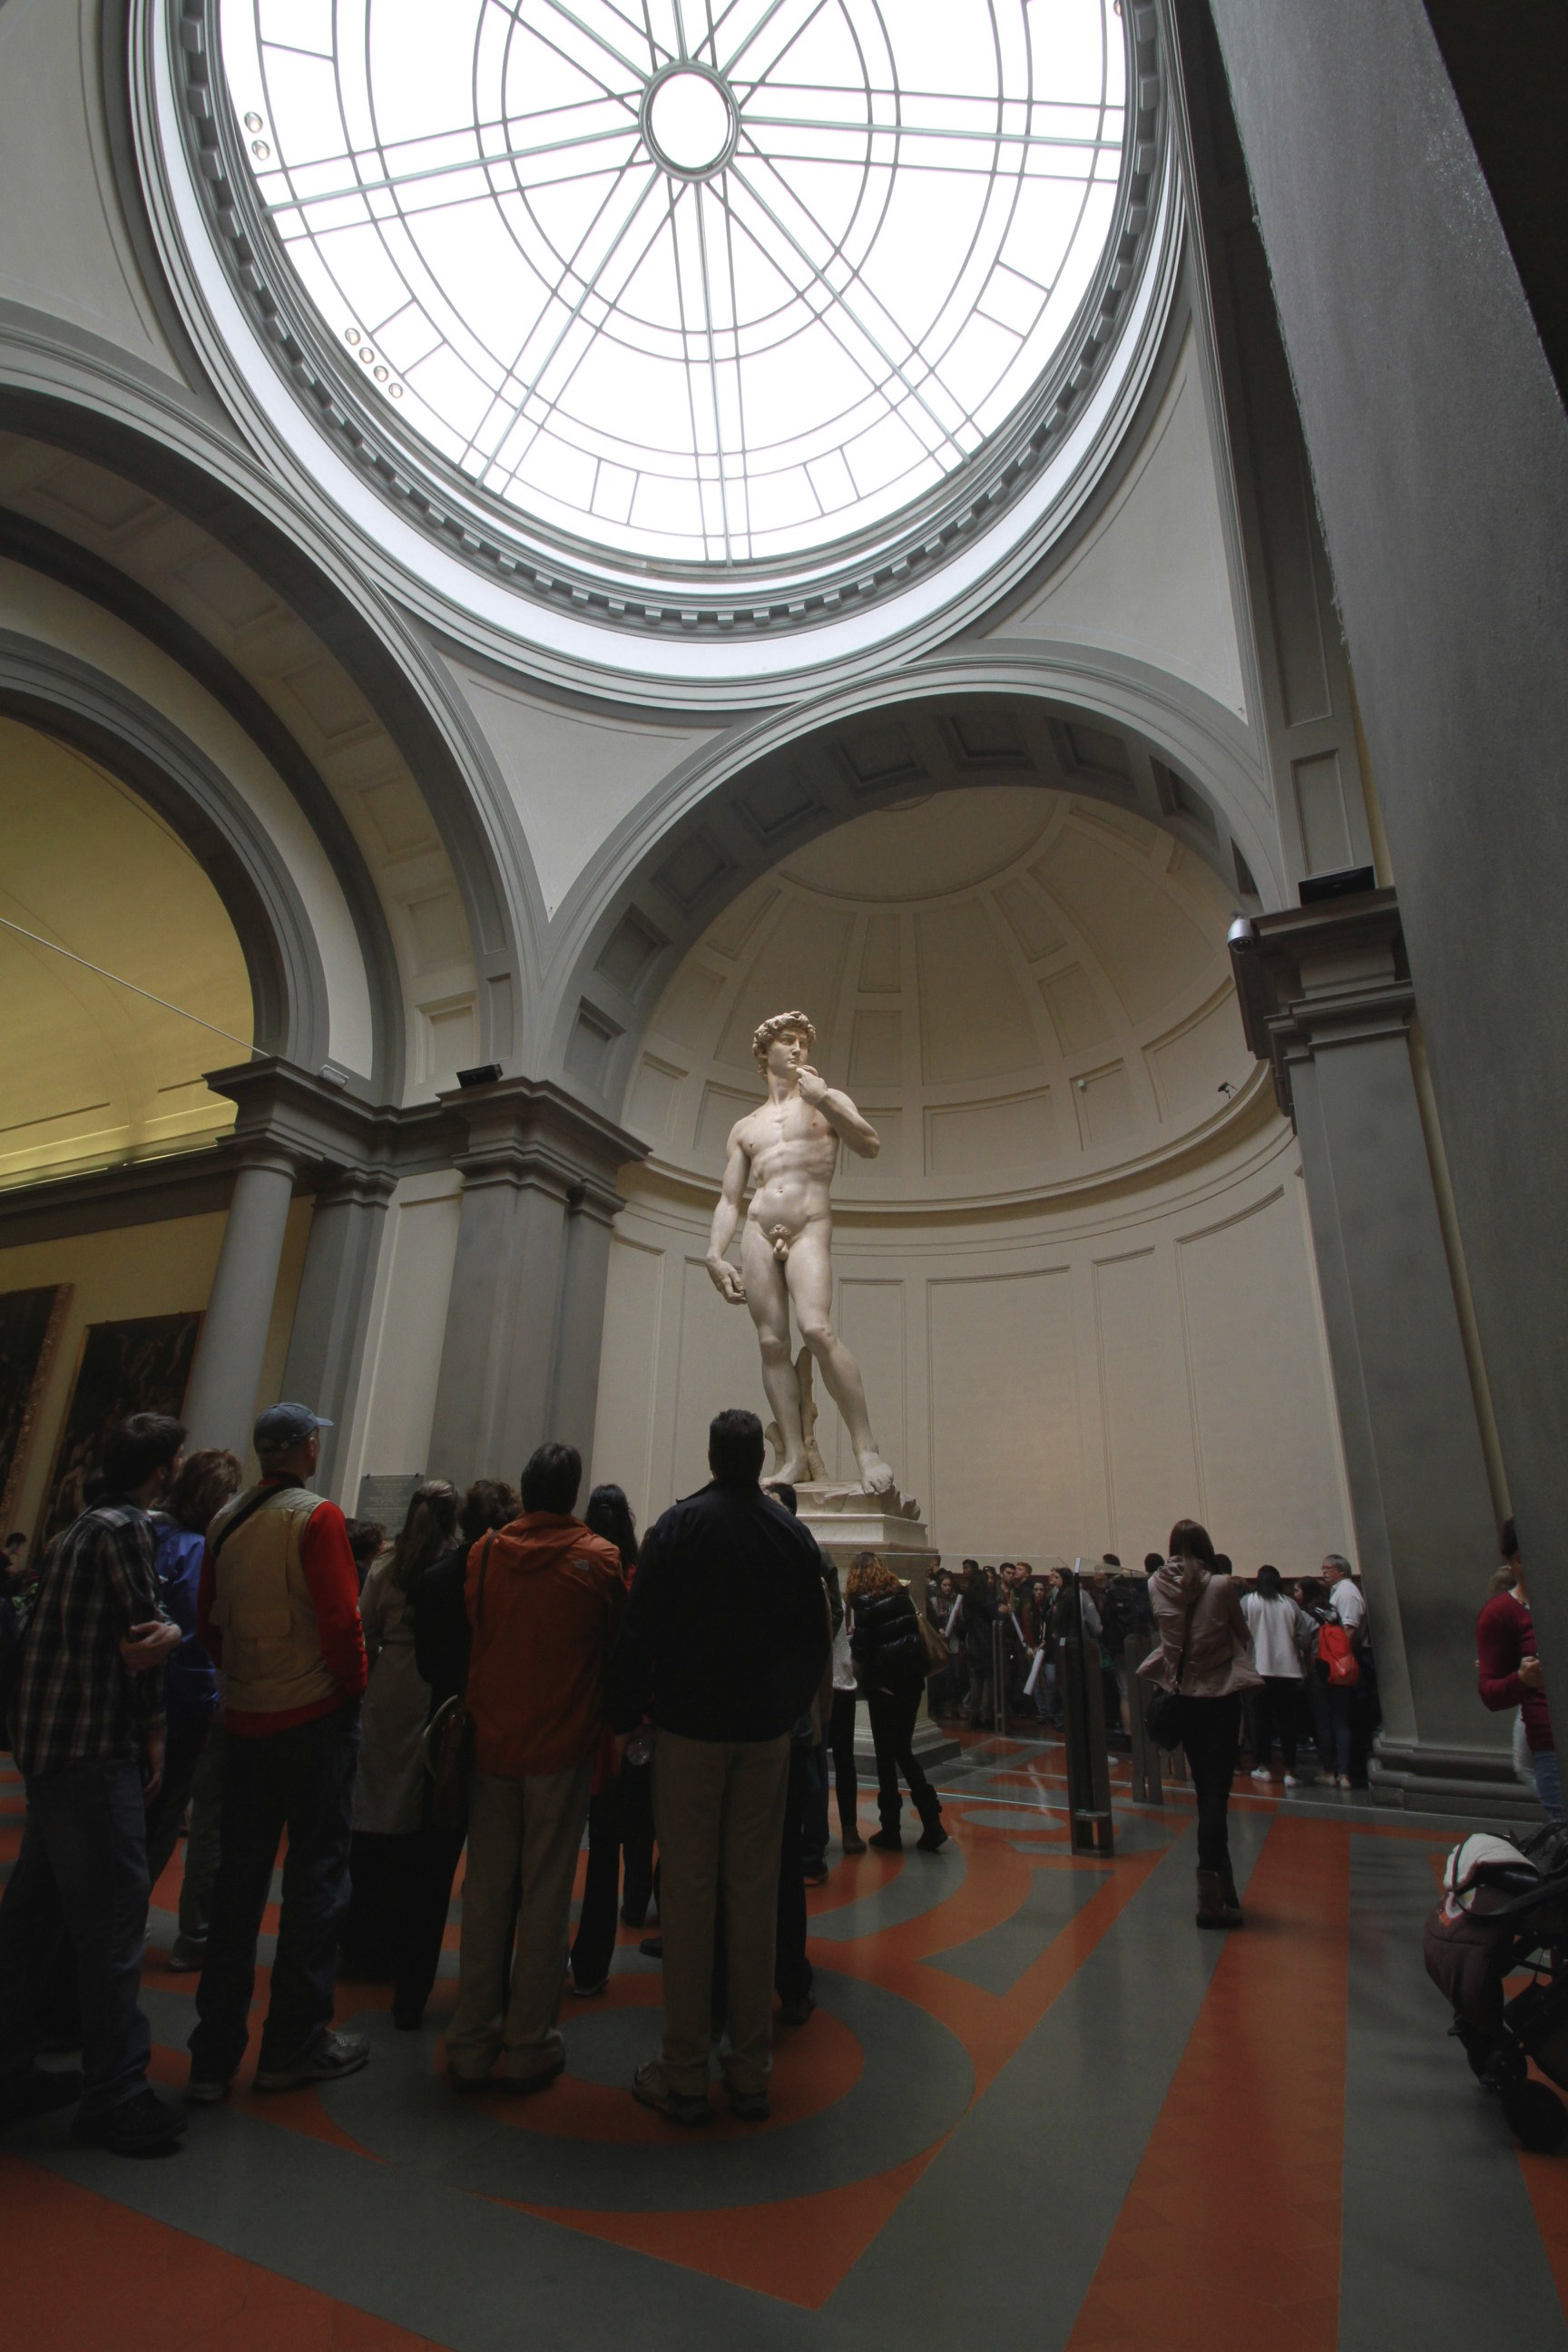 A hushed silence falls over visitors before Michelangelo's David.